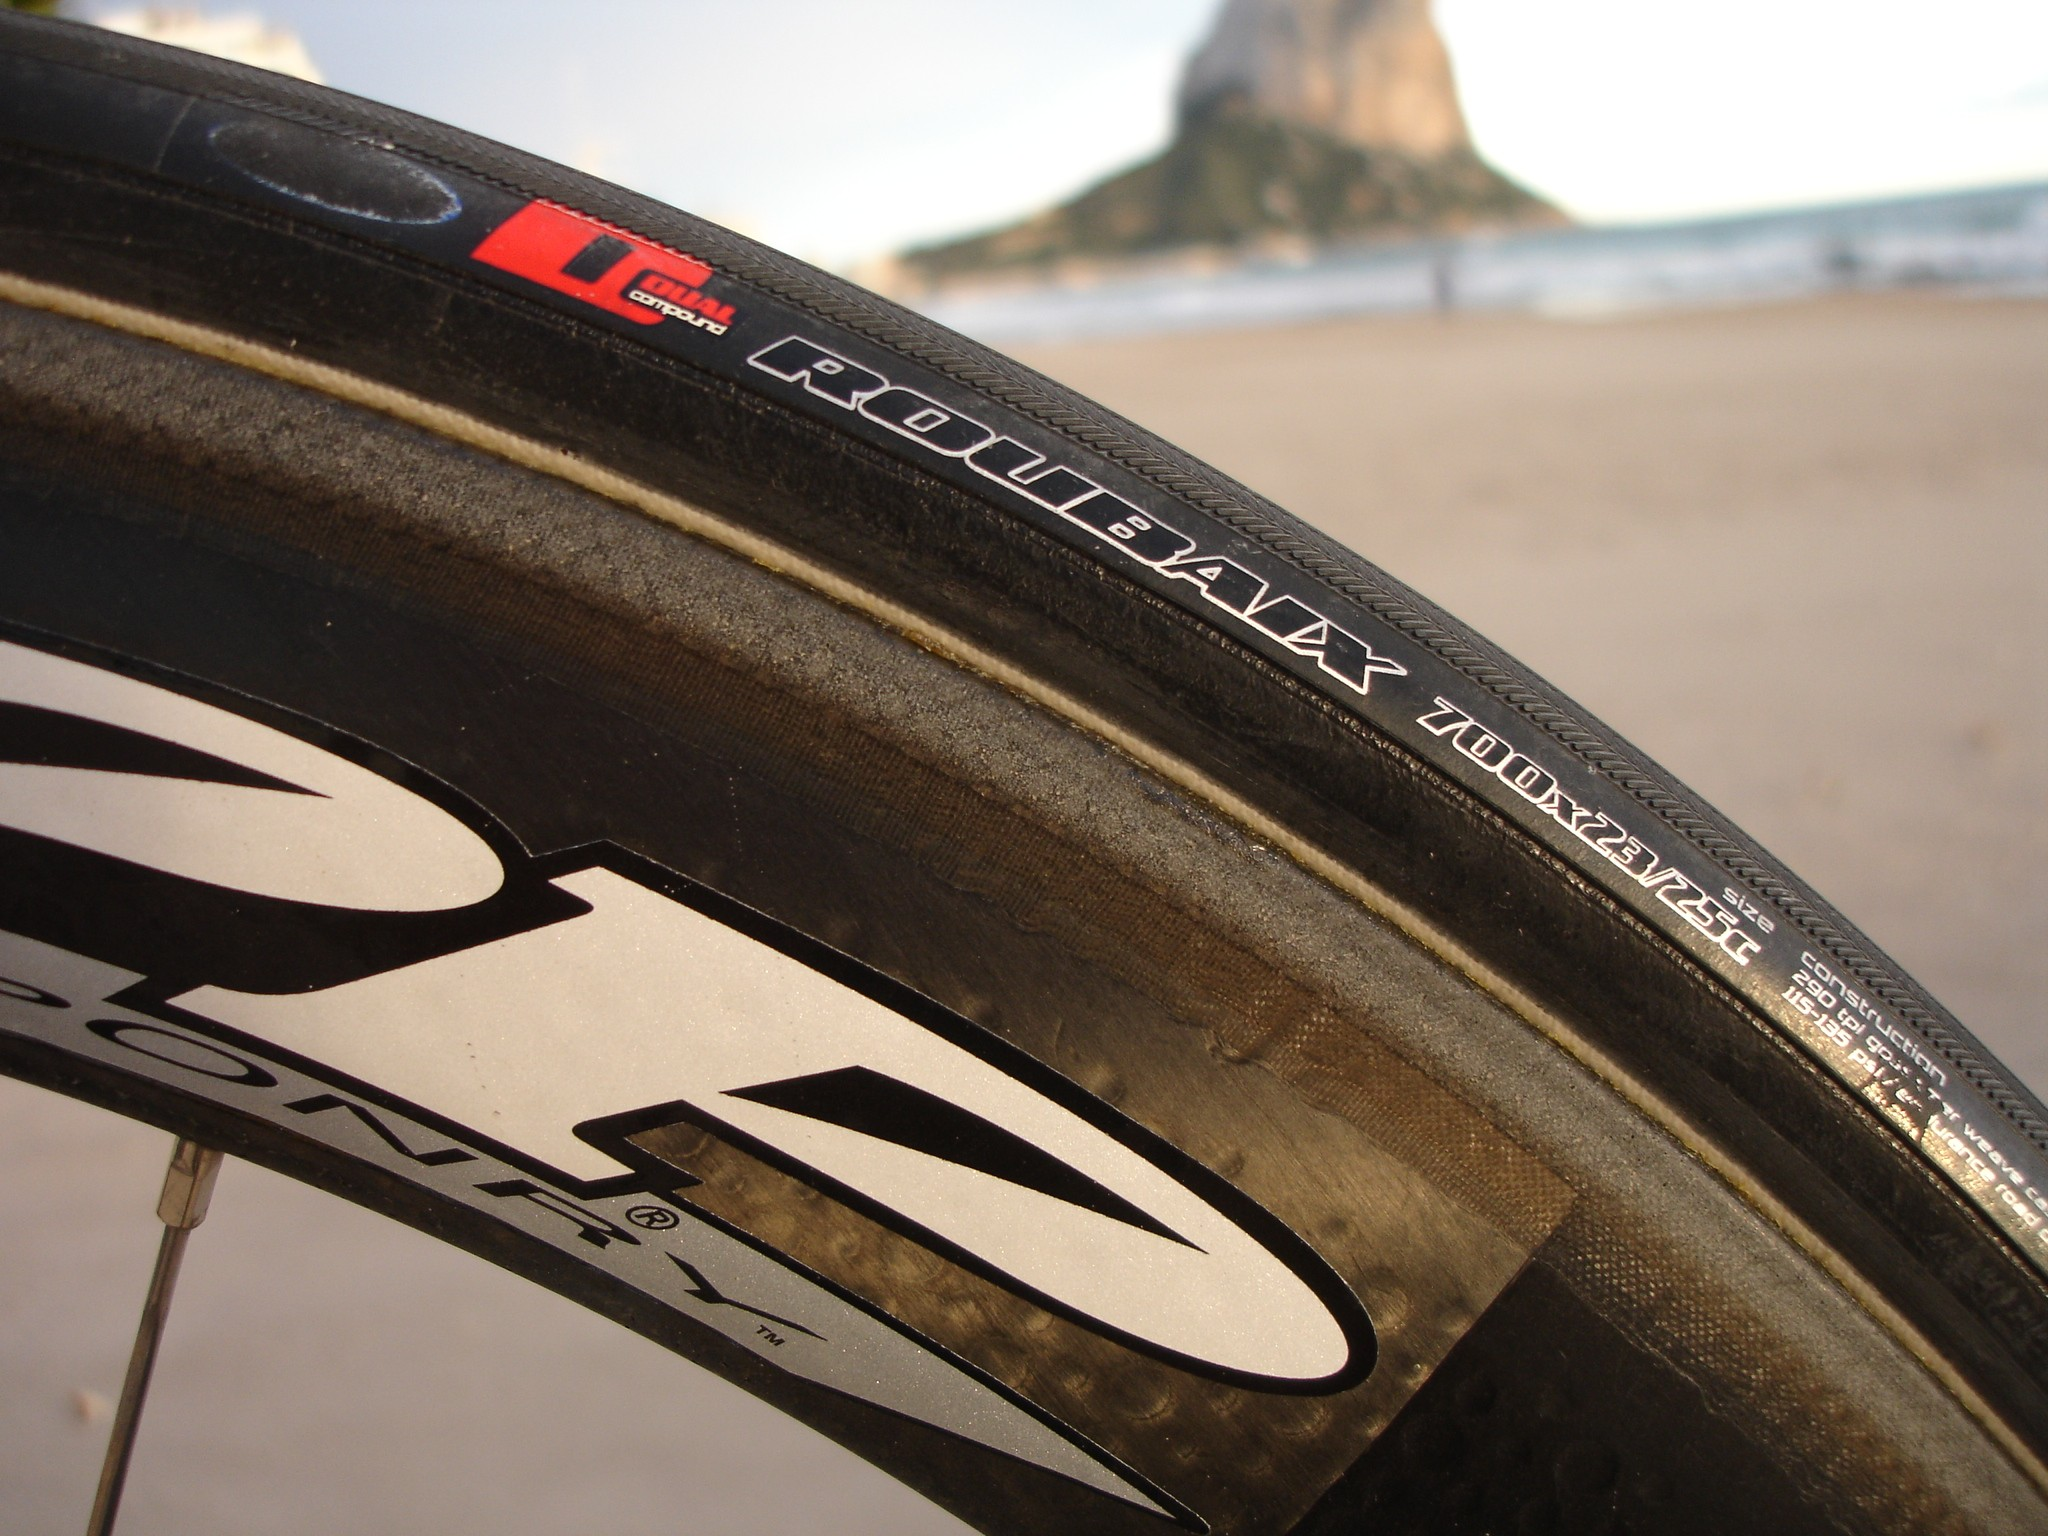 Astana starts the year on the Specialized S-Works Roubaix tyre